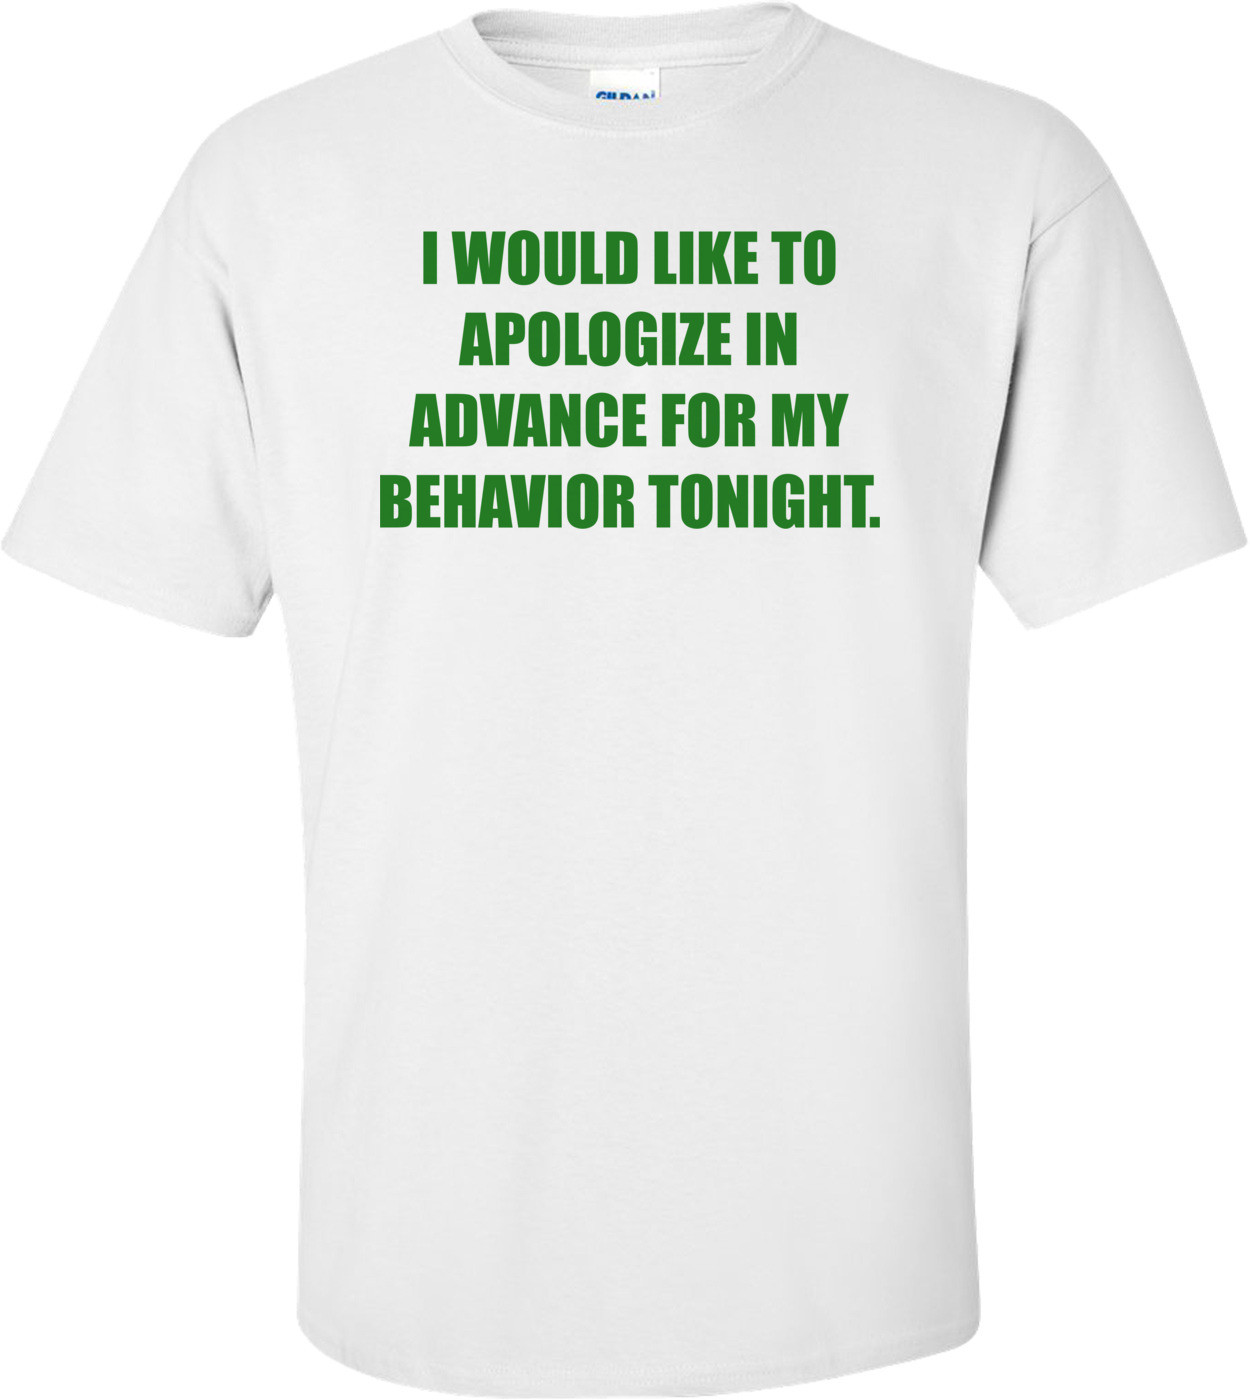 I WOULD LIKE TO APOLOGIZE IN ADVANCE FOR MY BEHAVIOR TONIGHT. Shirt